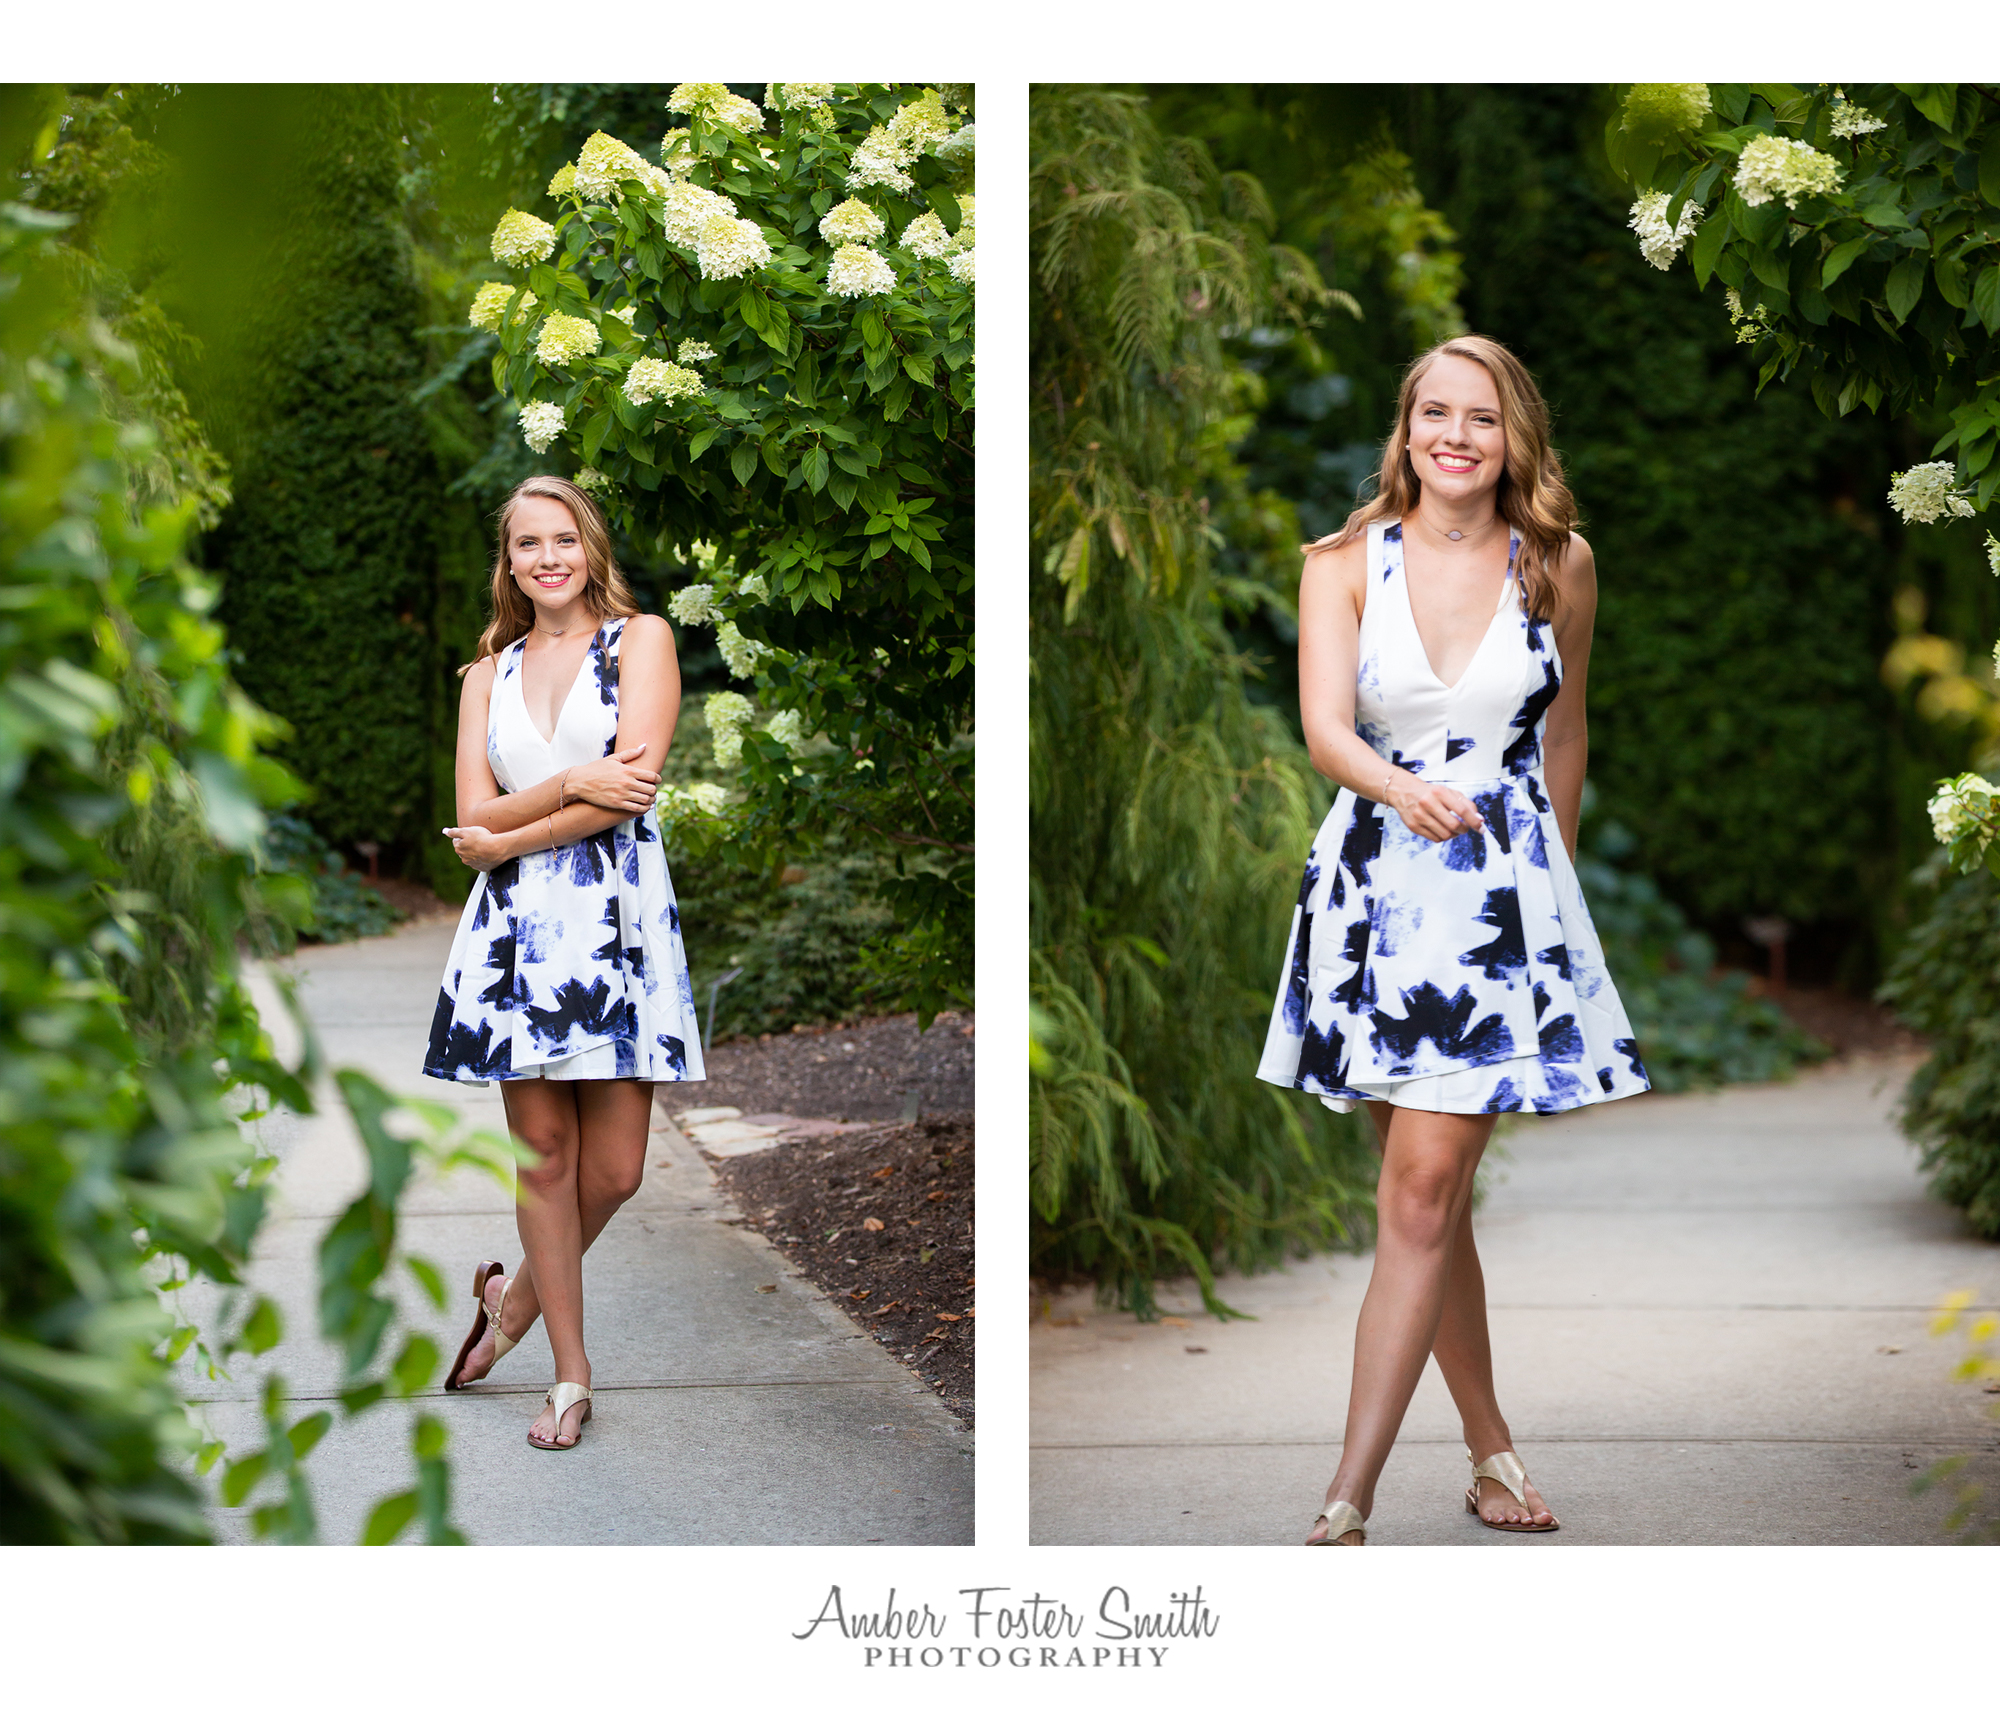 Amber Foster Smith Photography - Senior Portrait Photographer